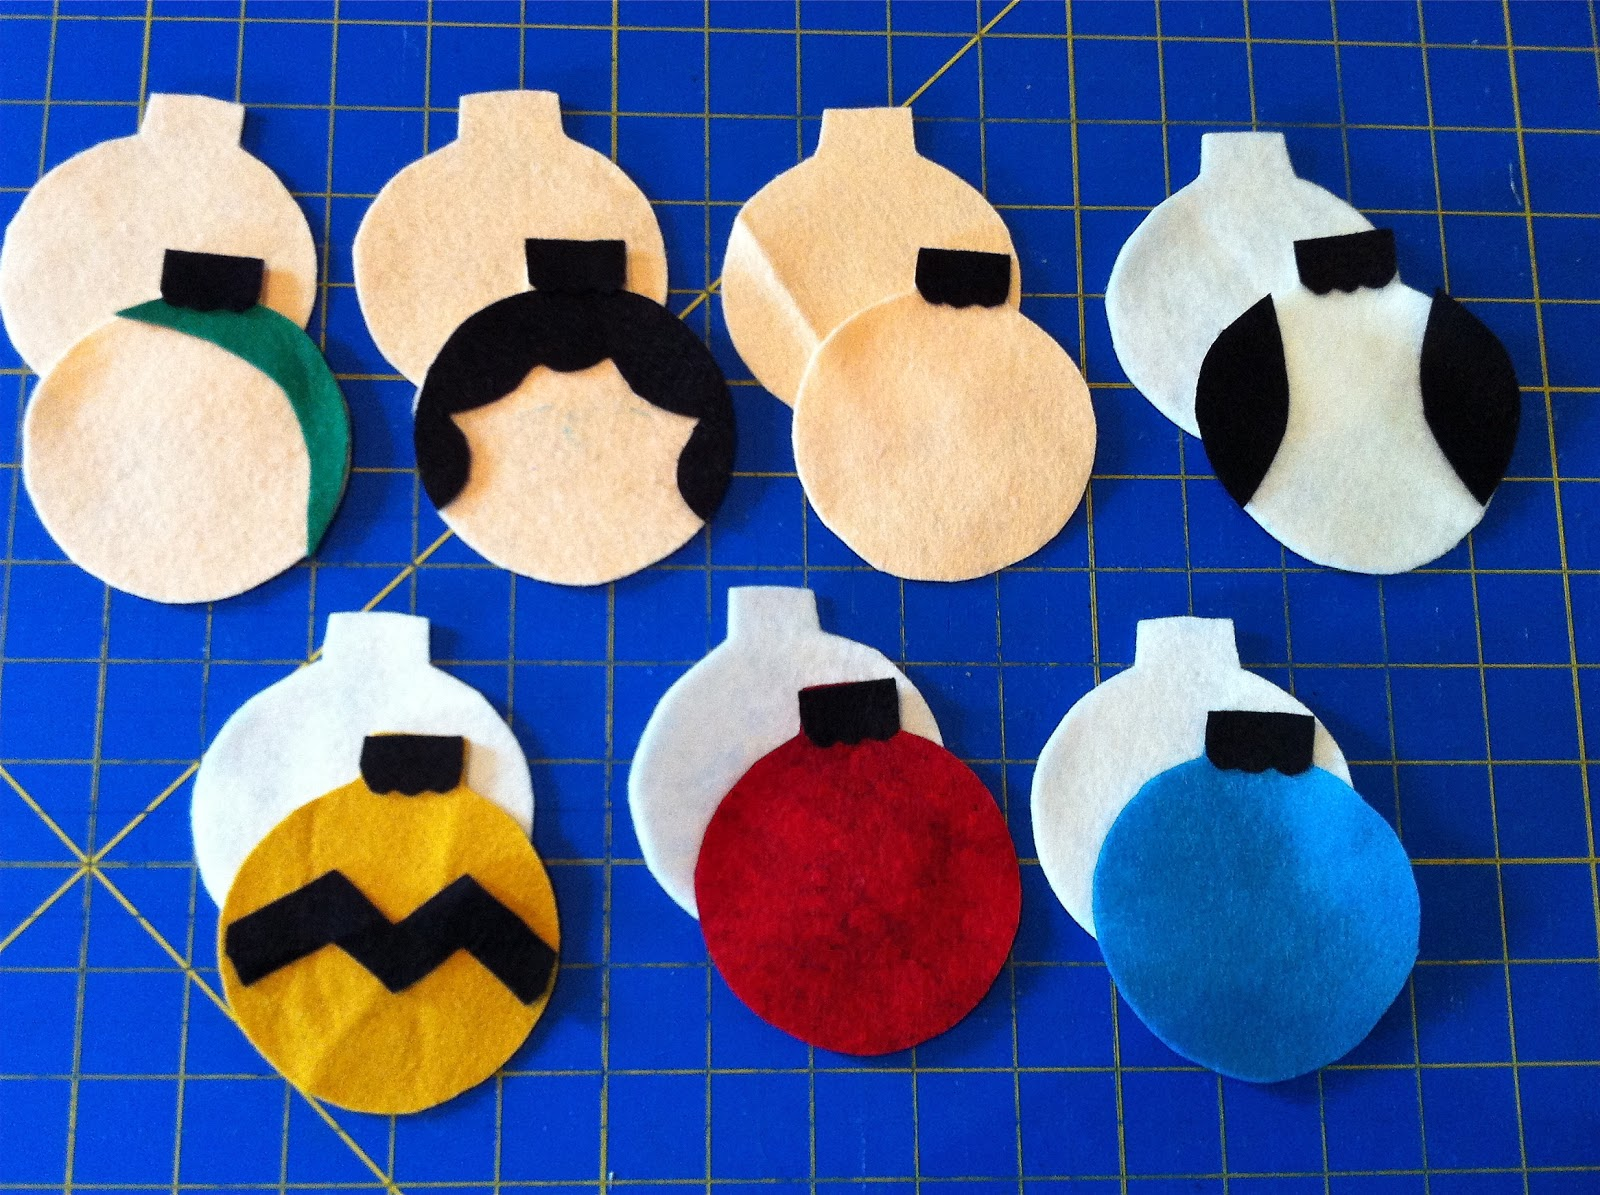 cut out the felt shapes from the ornament shape cut 6 peach 5 white and one each red yellow and blue each ornament will have a front and back main piece